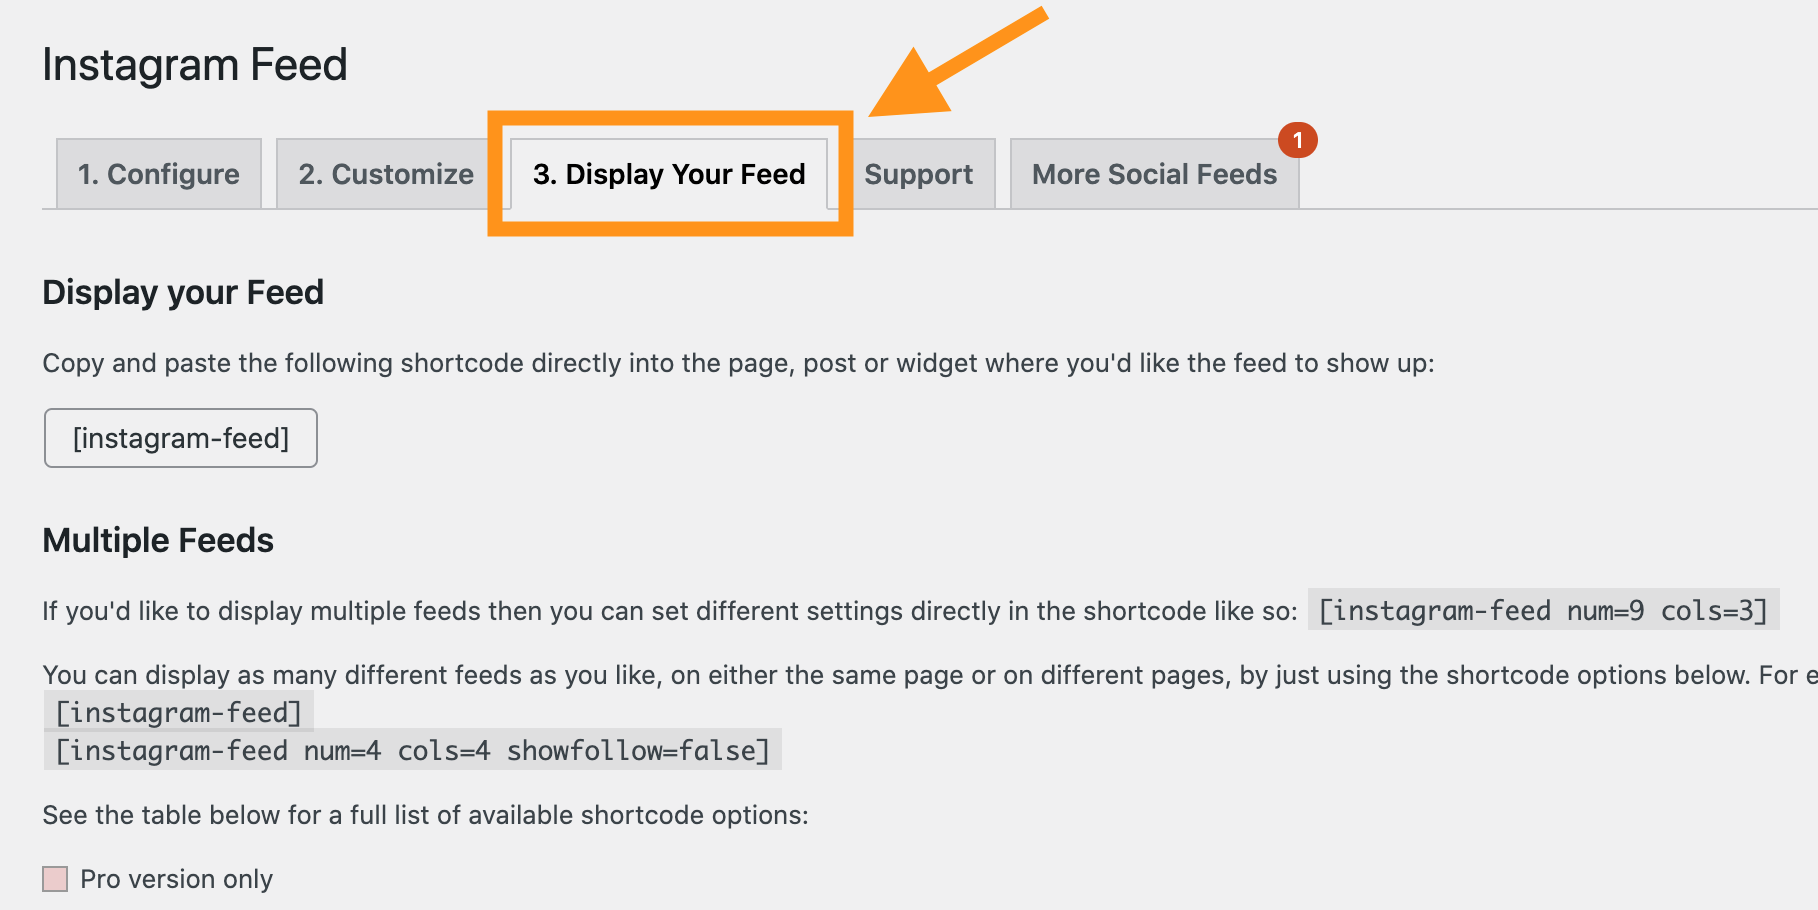 Instagram feedの設定>Display your feed